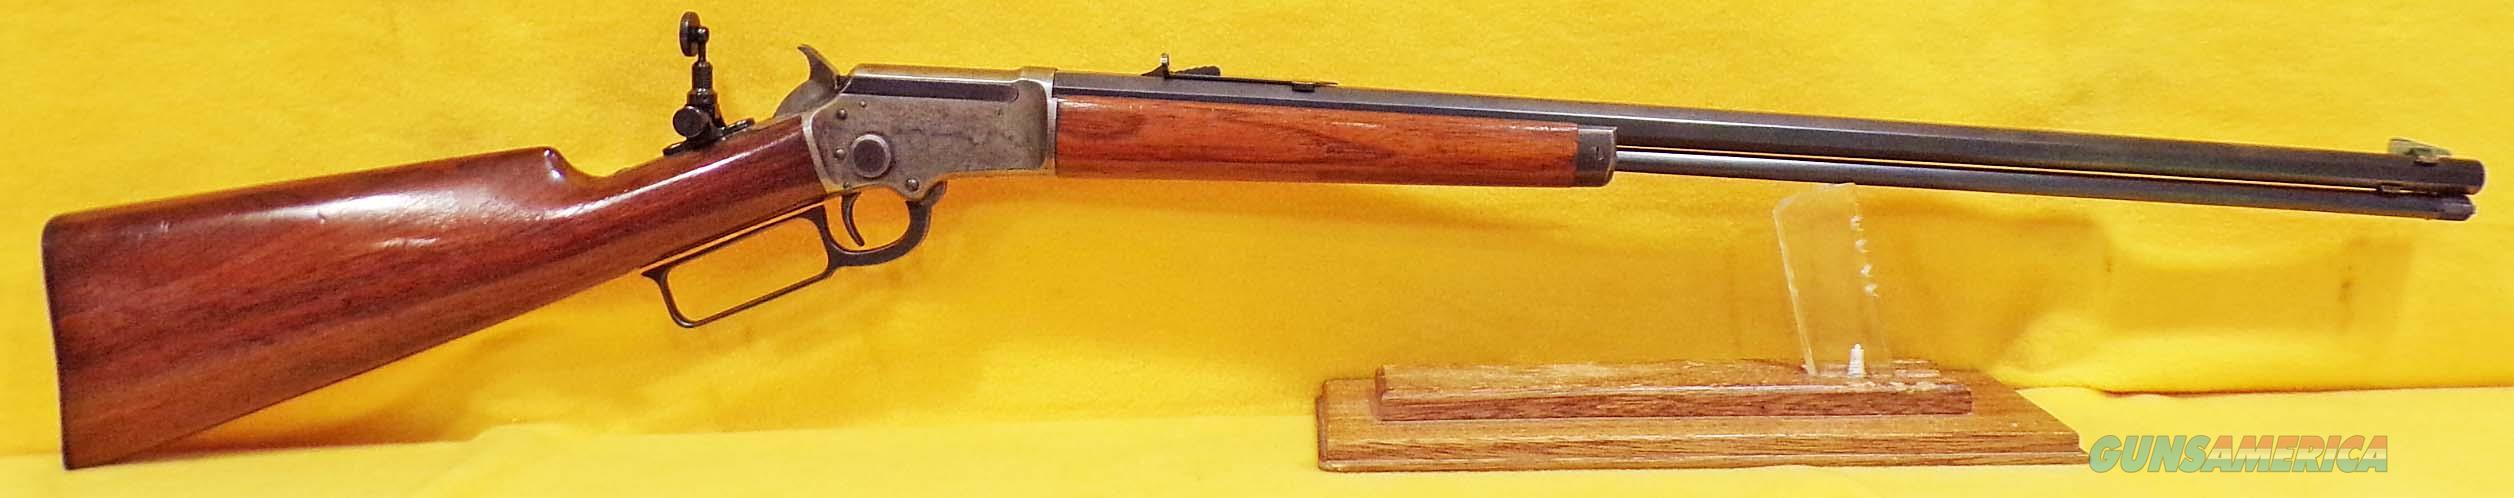 MARLIN 1897  Guns > Rifles > Marlin Rifles > Modern > Lever Action